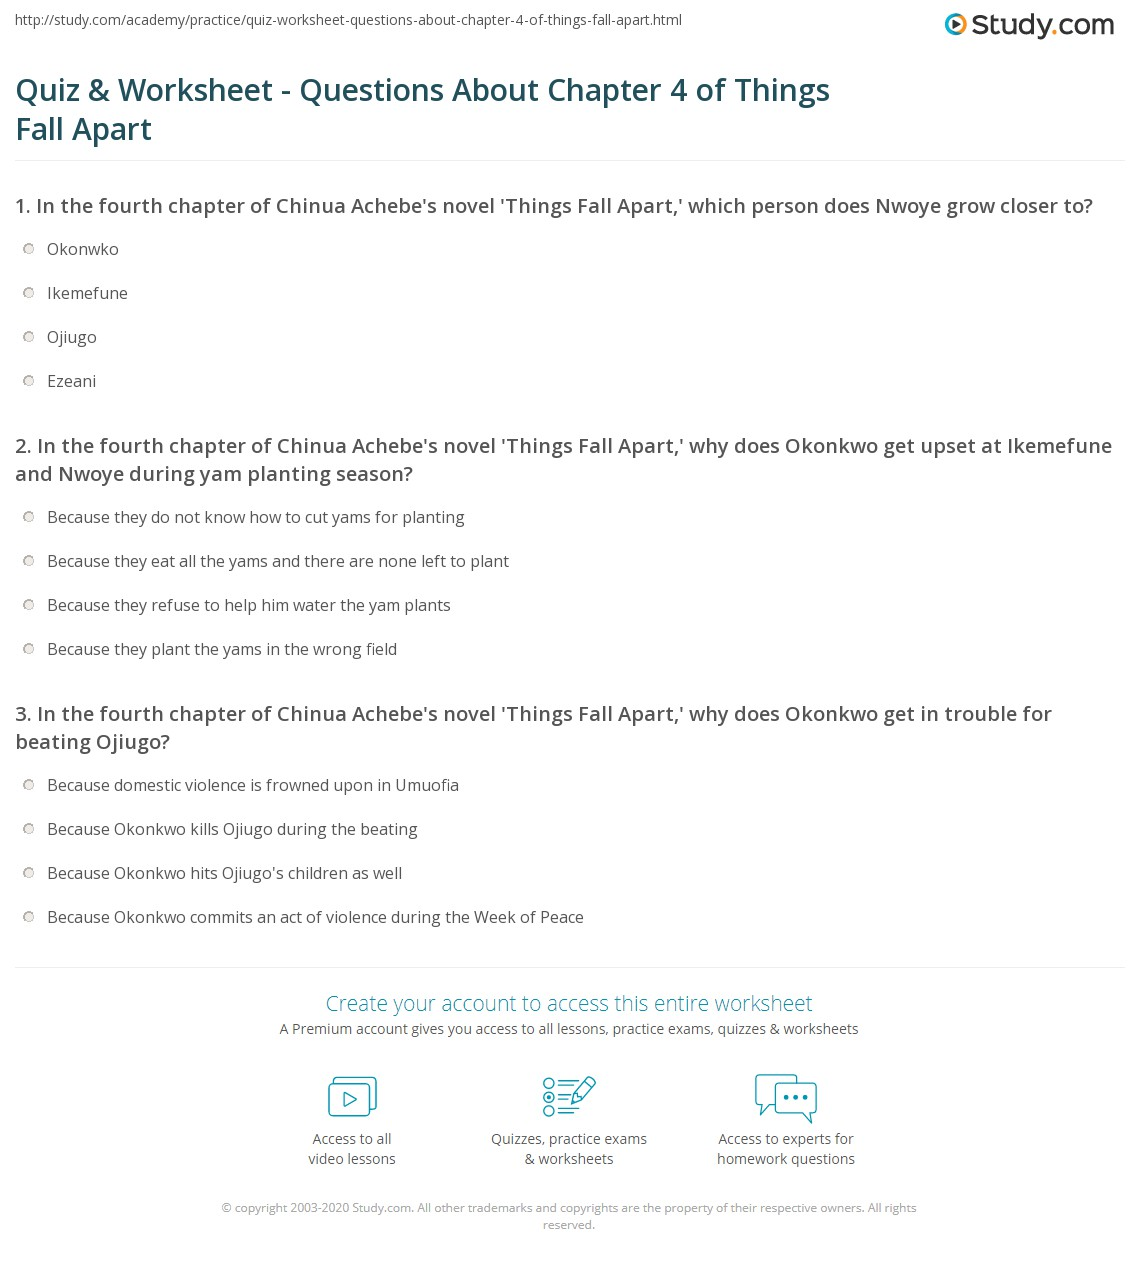 quiz worksheet questions about chapter of things fall apart in the fourth chapter of chinua achebe s novel things fall apart why does okonkwo get upset at ikemefune and nwoye during yam planting season